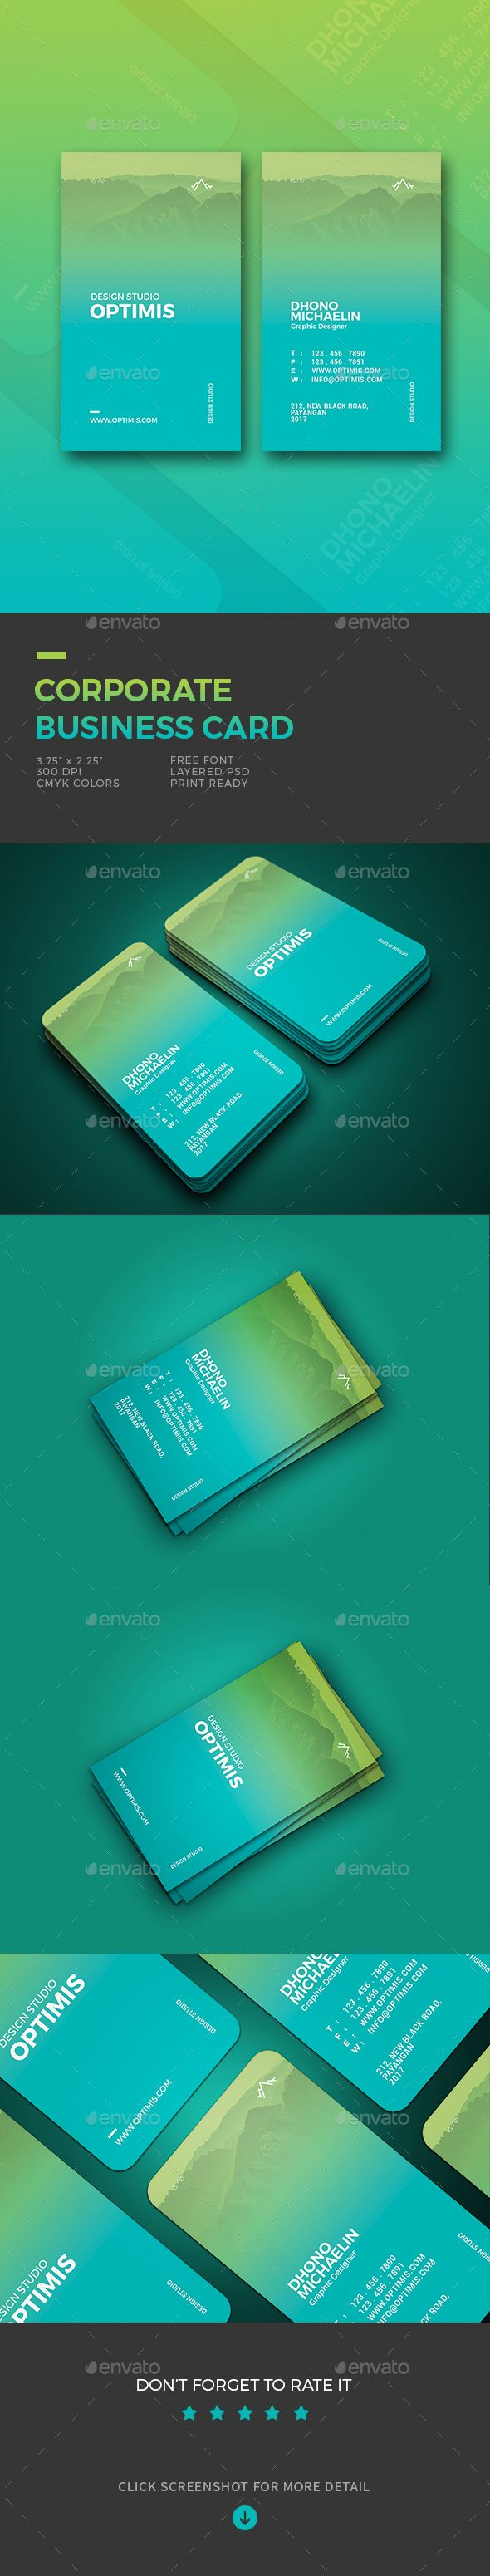 #Corporate #Business #Card - Business Cards Print Templates Download here: https://graphicriver.net/item/corporate-business-card/19575555?ref=alena994